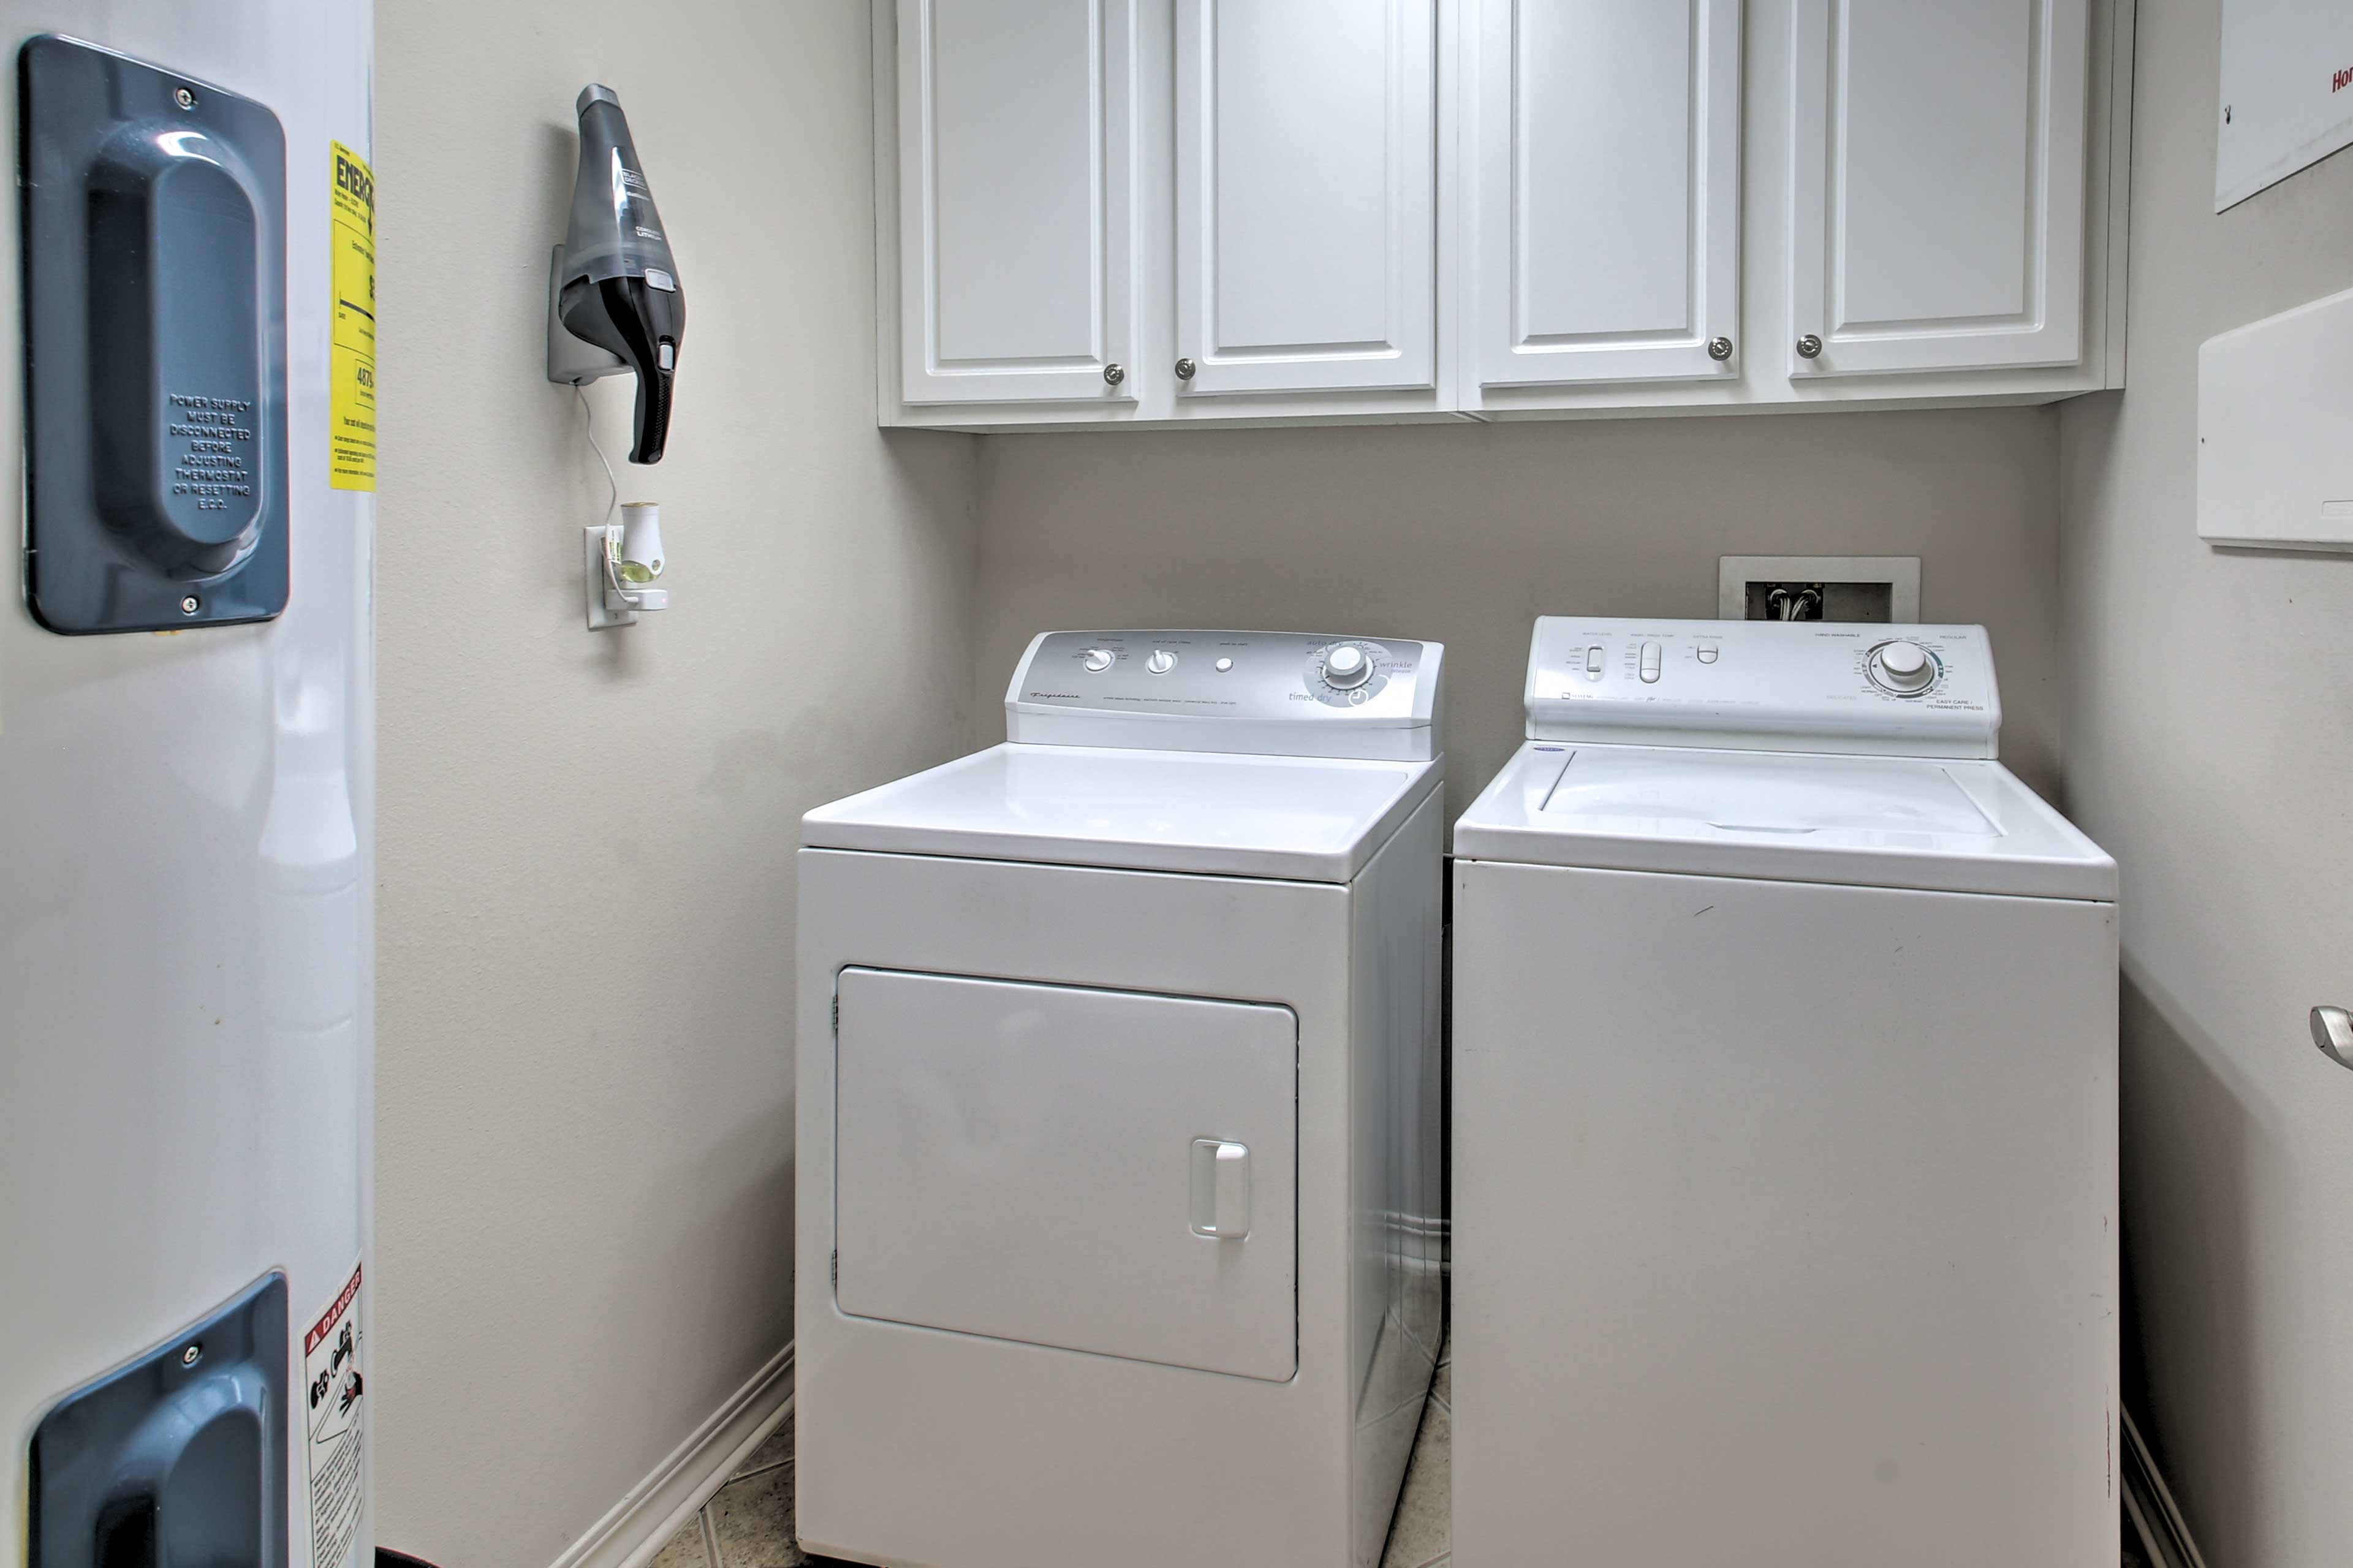 Throw in a load of laundry using the in-unit washer/dryer.